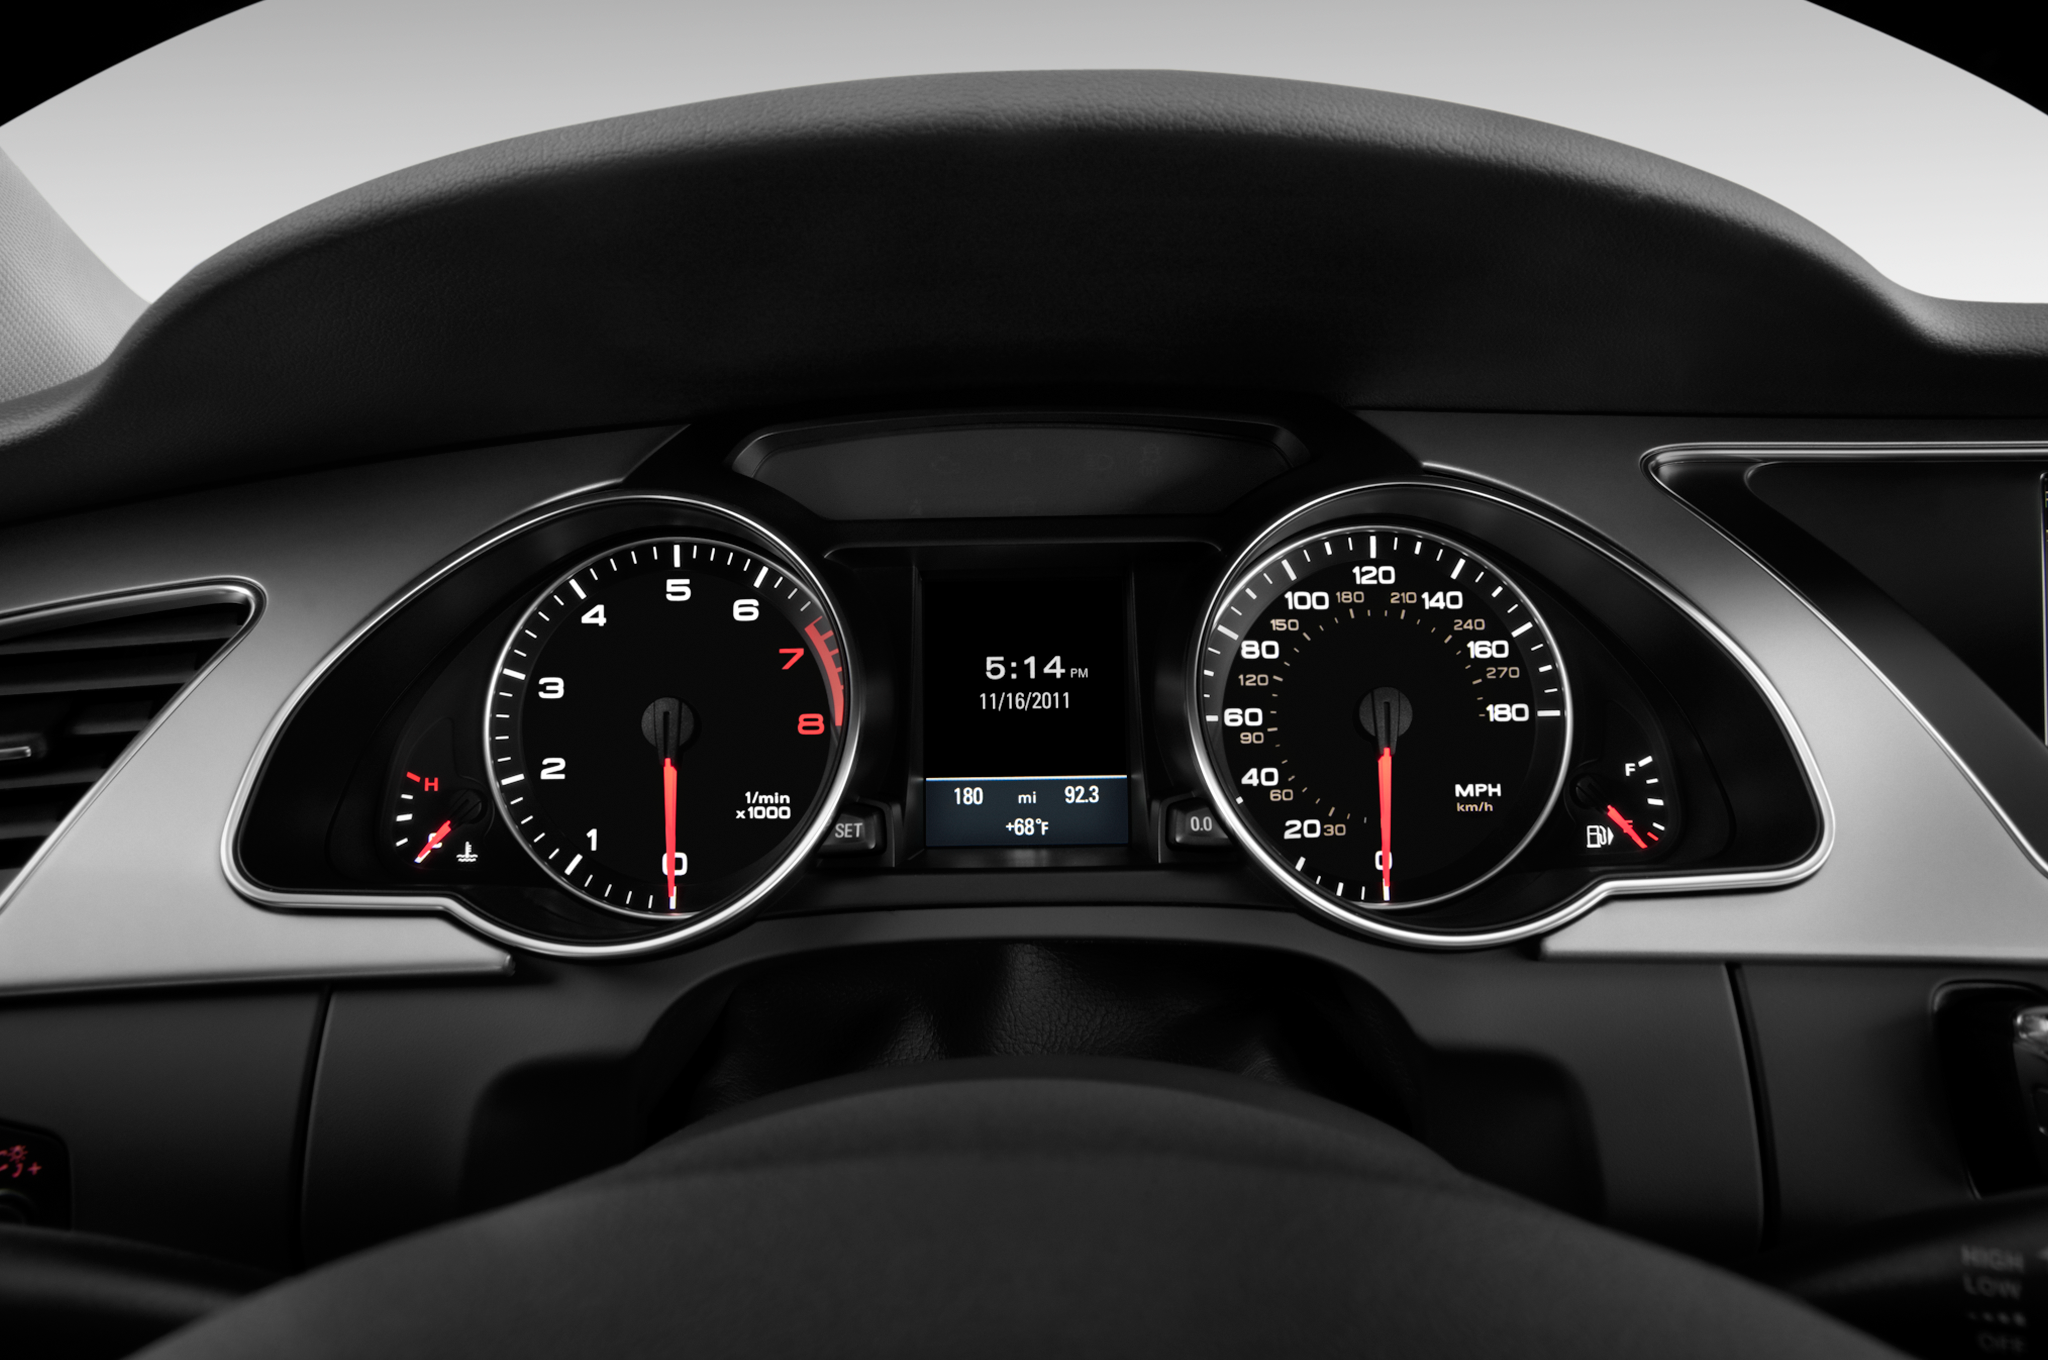 Feature Flick Audi S New Video Shows Off 2013 A5 Range